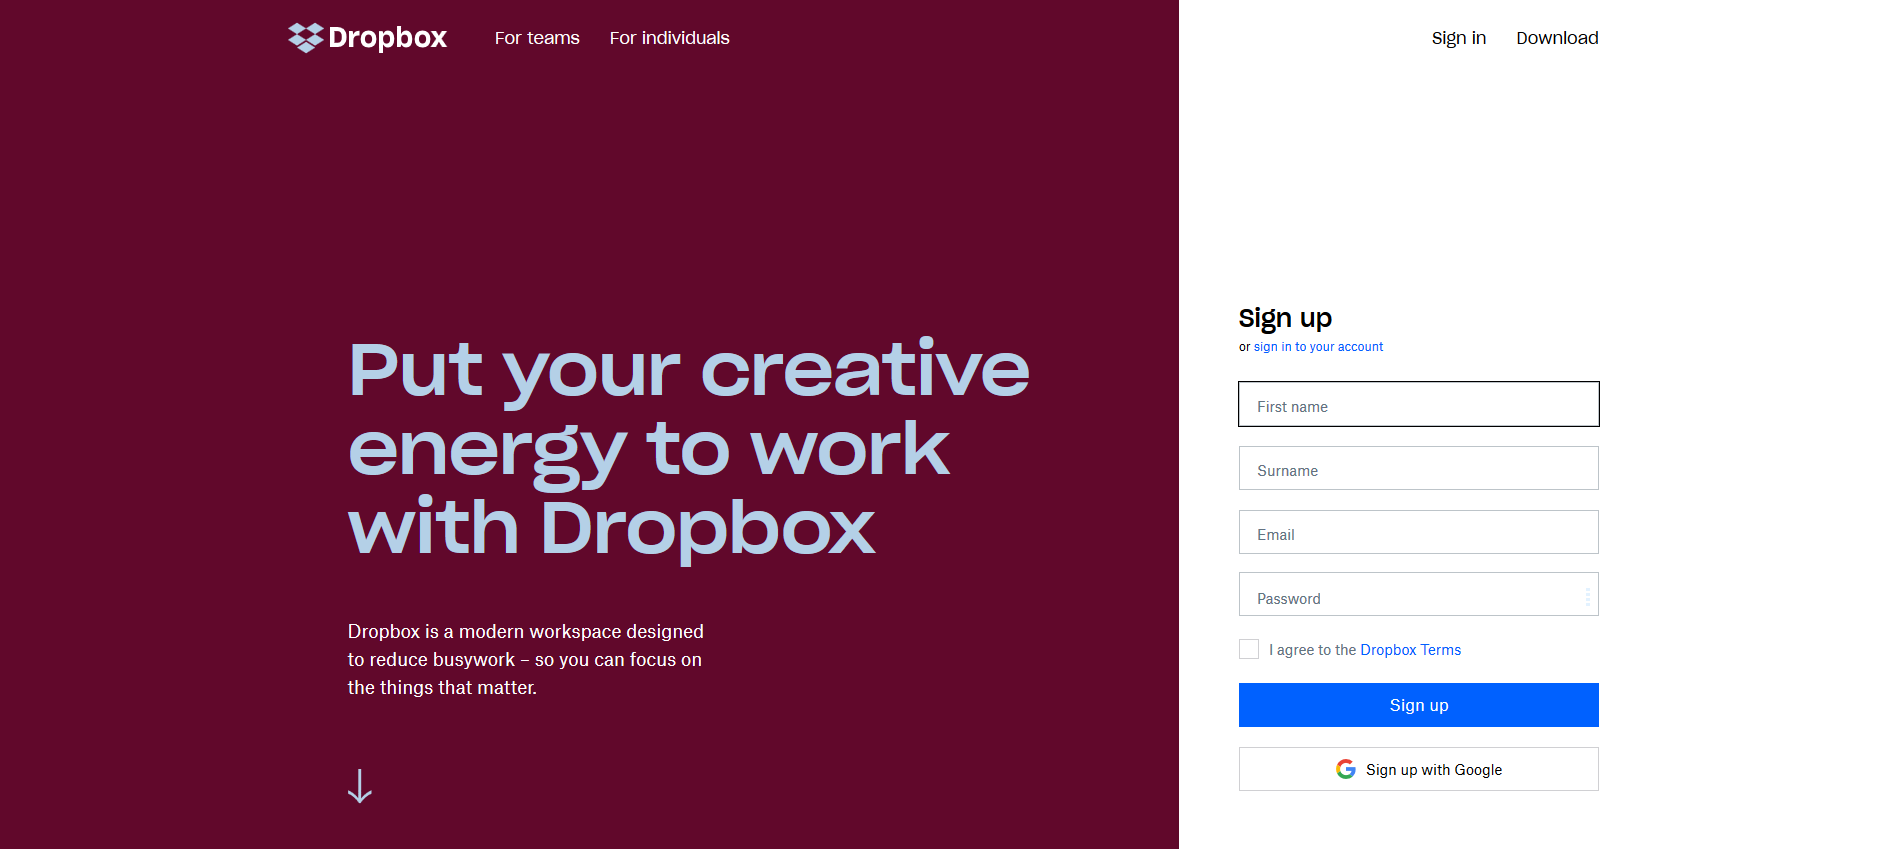 Dropbox UX design